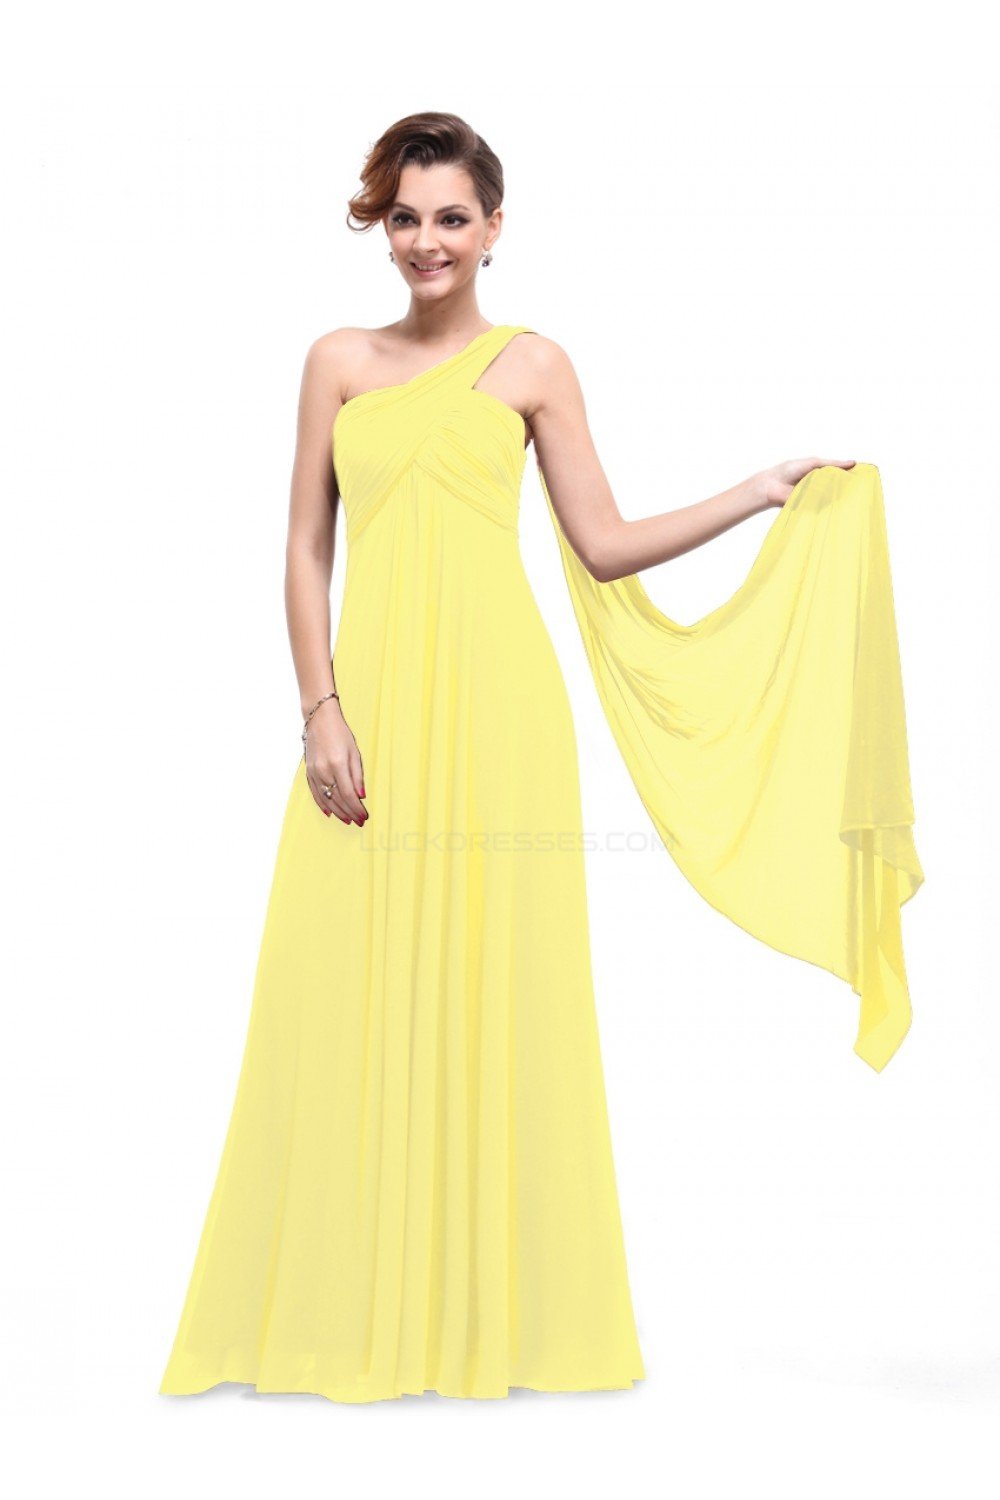 One shoulder long yellow chiffon bridesmaid dressesevening empire one shoulder long yellow chiffon bridesmaid dressesevening dressesmaternity dresses bd010298 ombrellifo Gallery